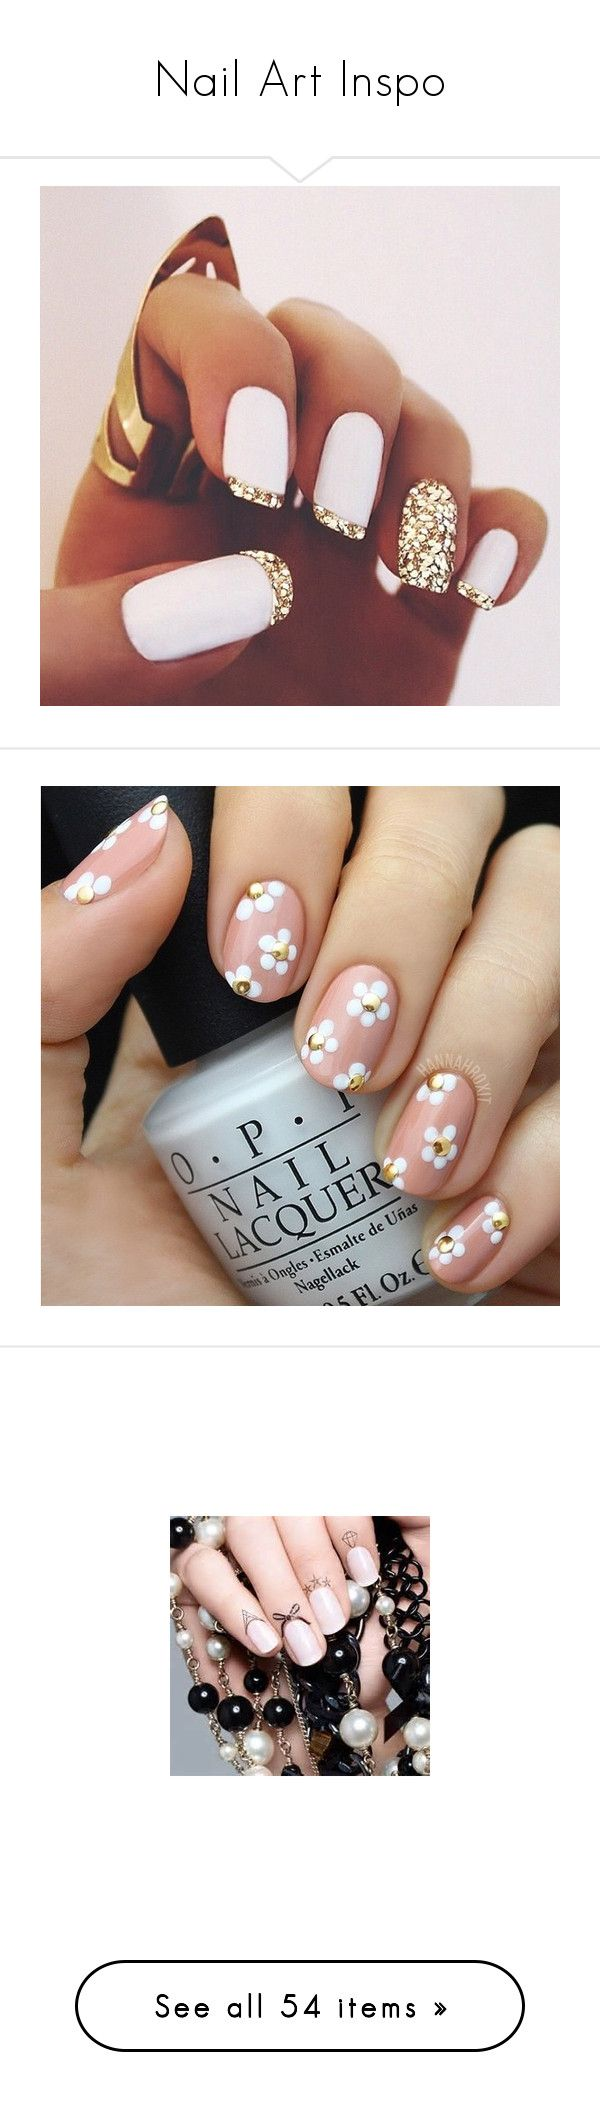 """""""Nail Art Inspo"""" by daizydarling ❤ liked on Polyvore featuring nails, makeup, beauty, nail art, unhas, nail polish, lullabies, kylie jenner, accessories and pics"""